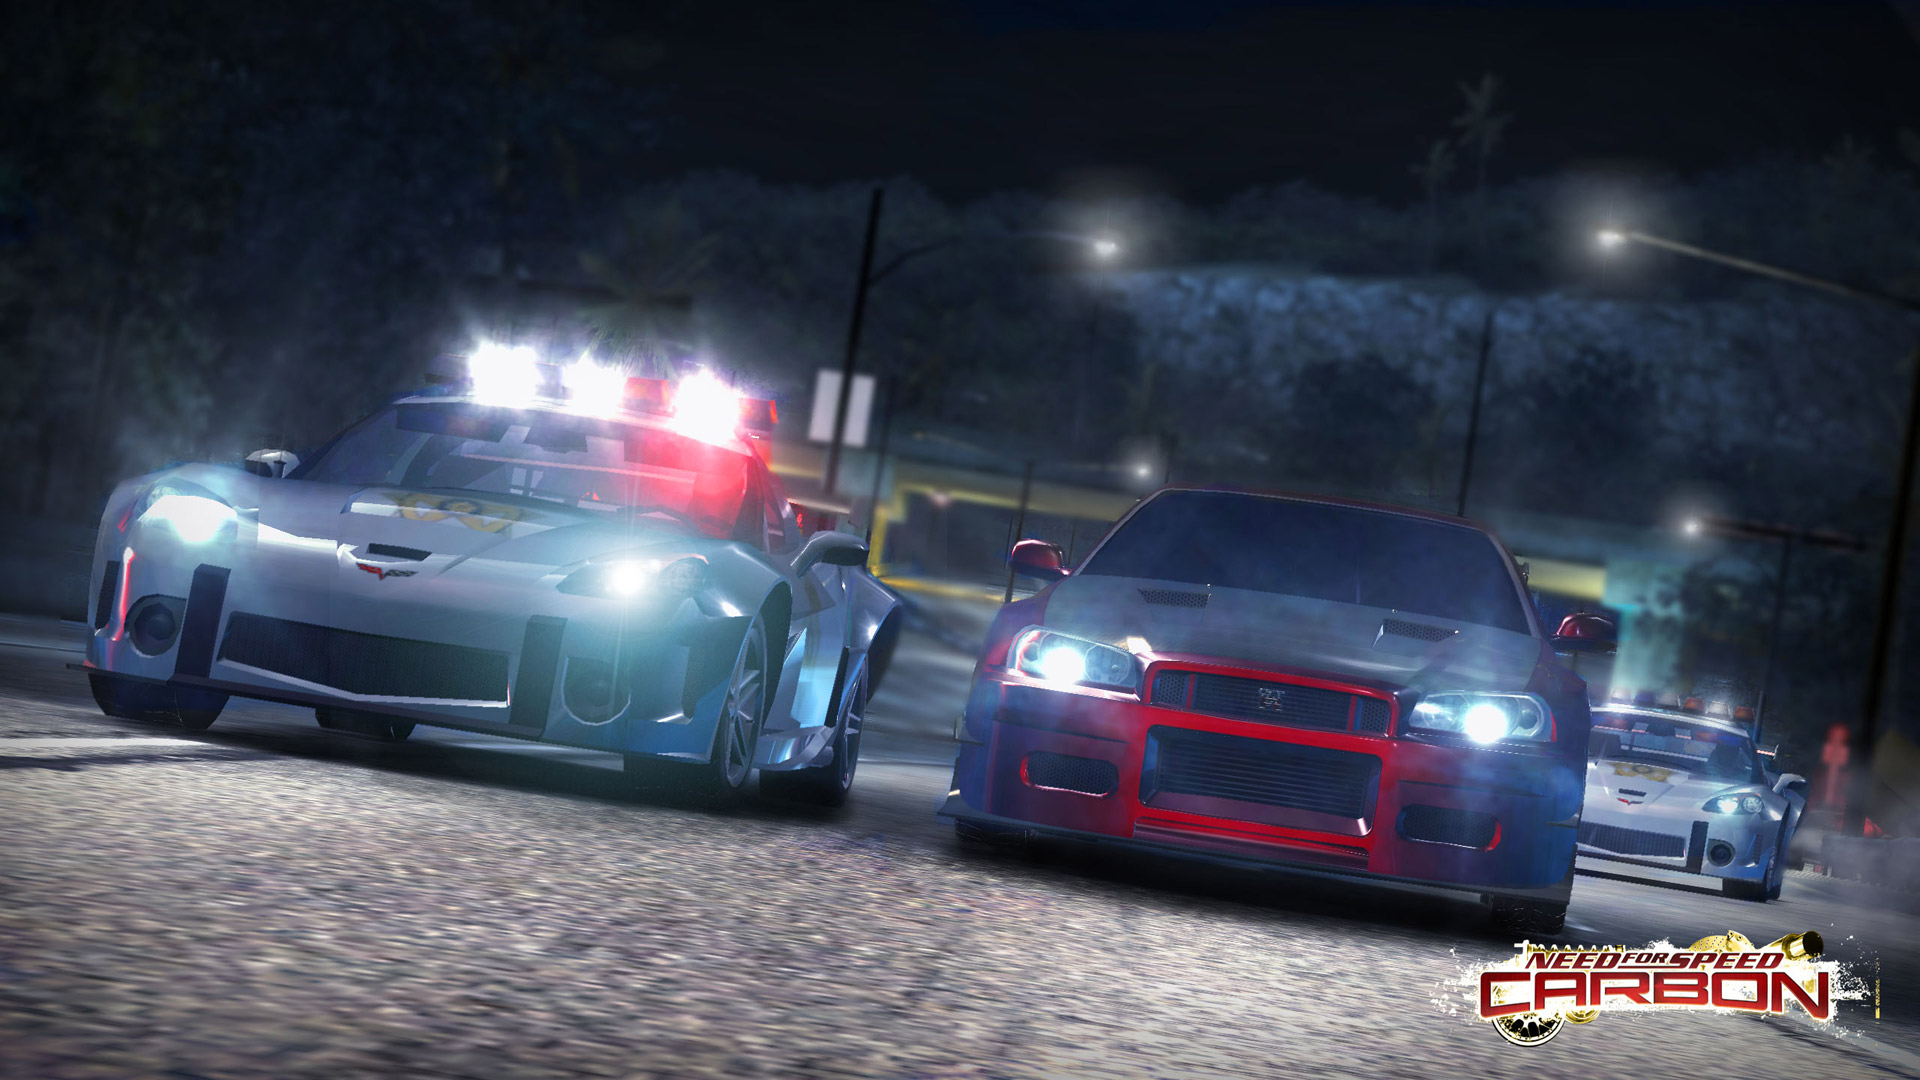 Free Need For Speed: Carbon Wallpaper in 1920x1080